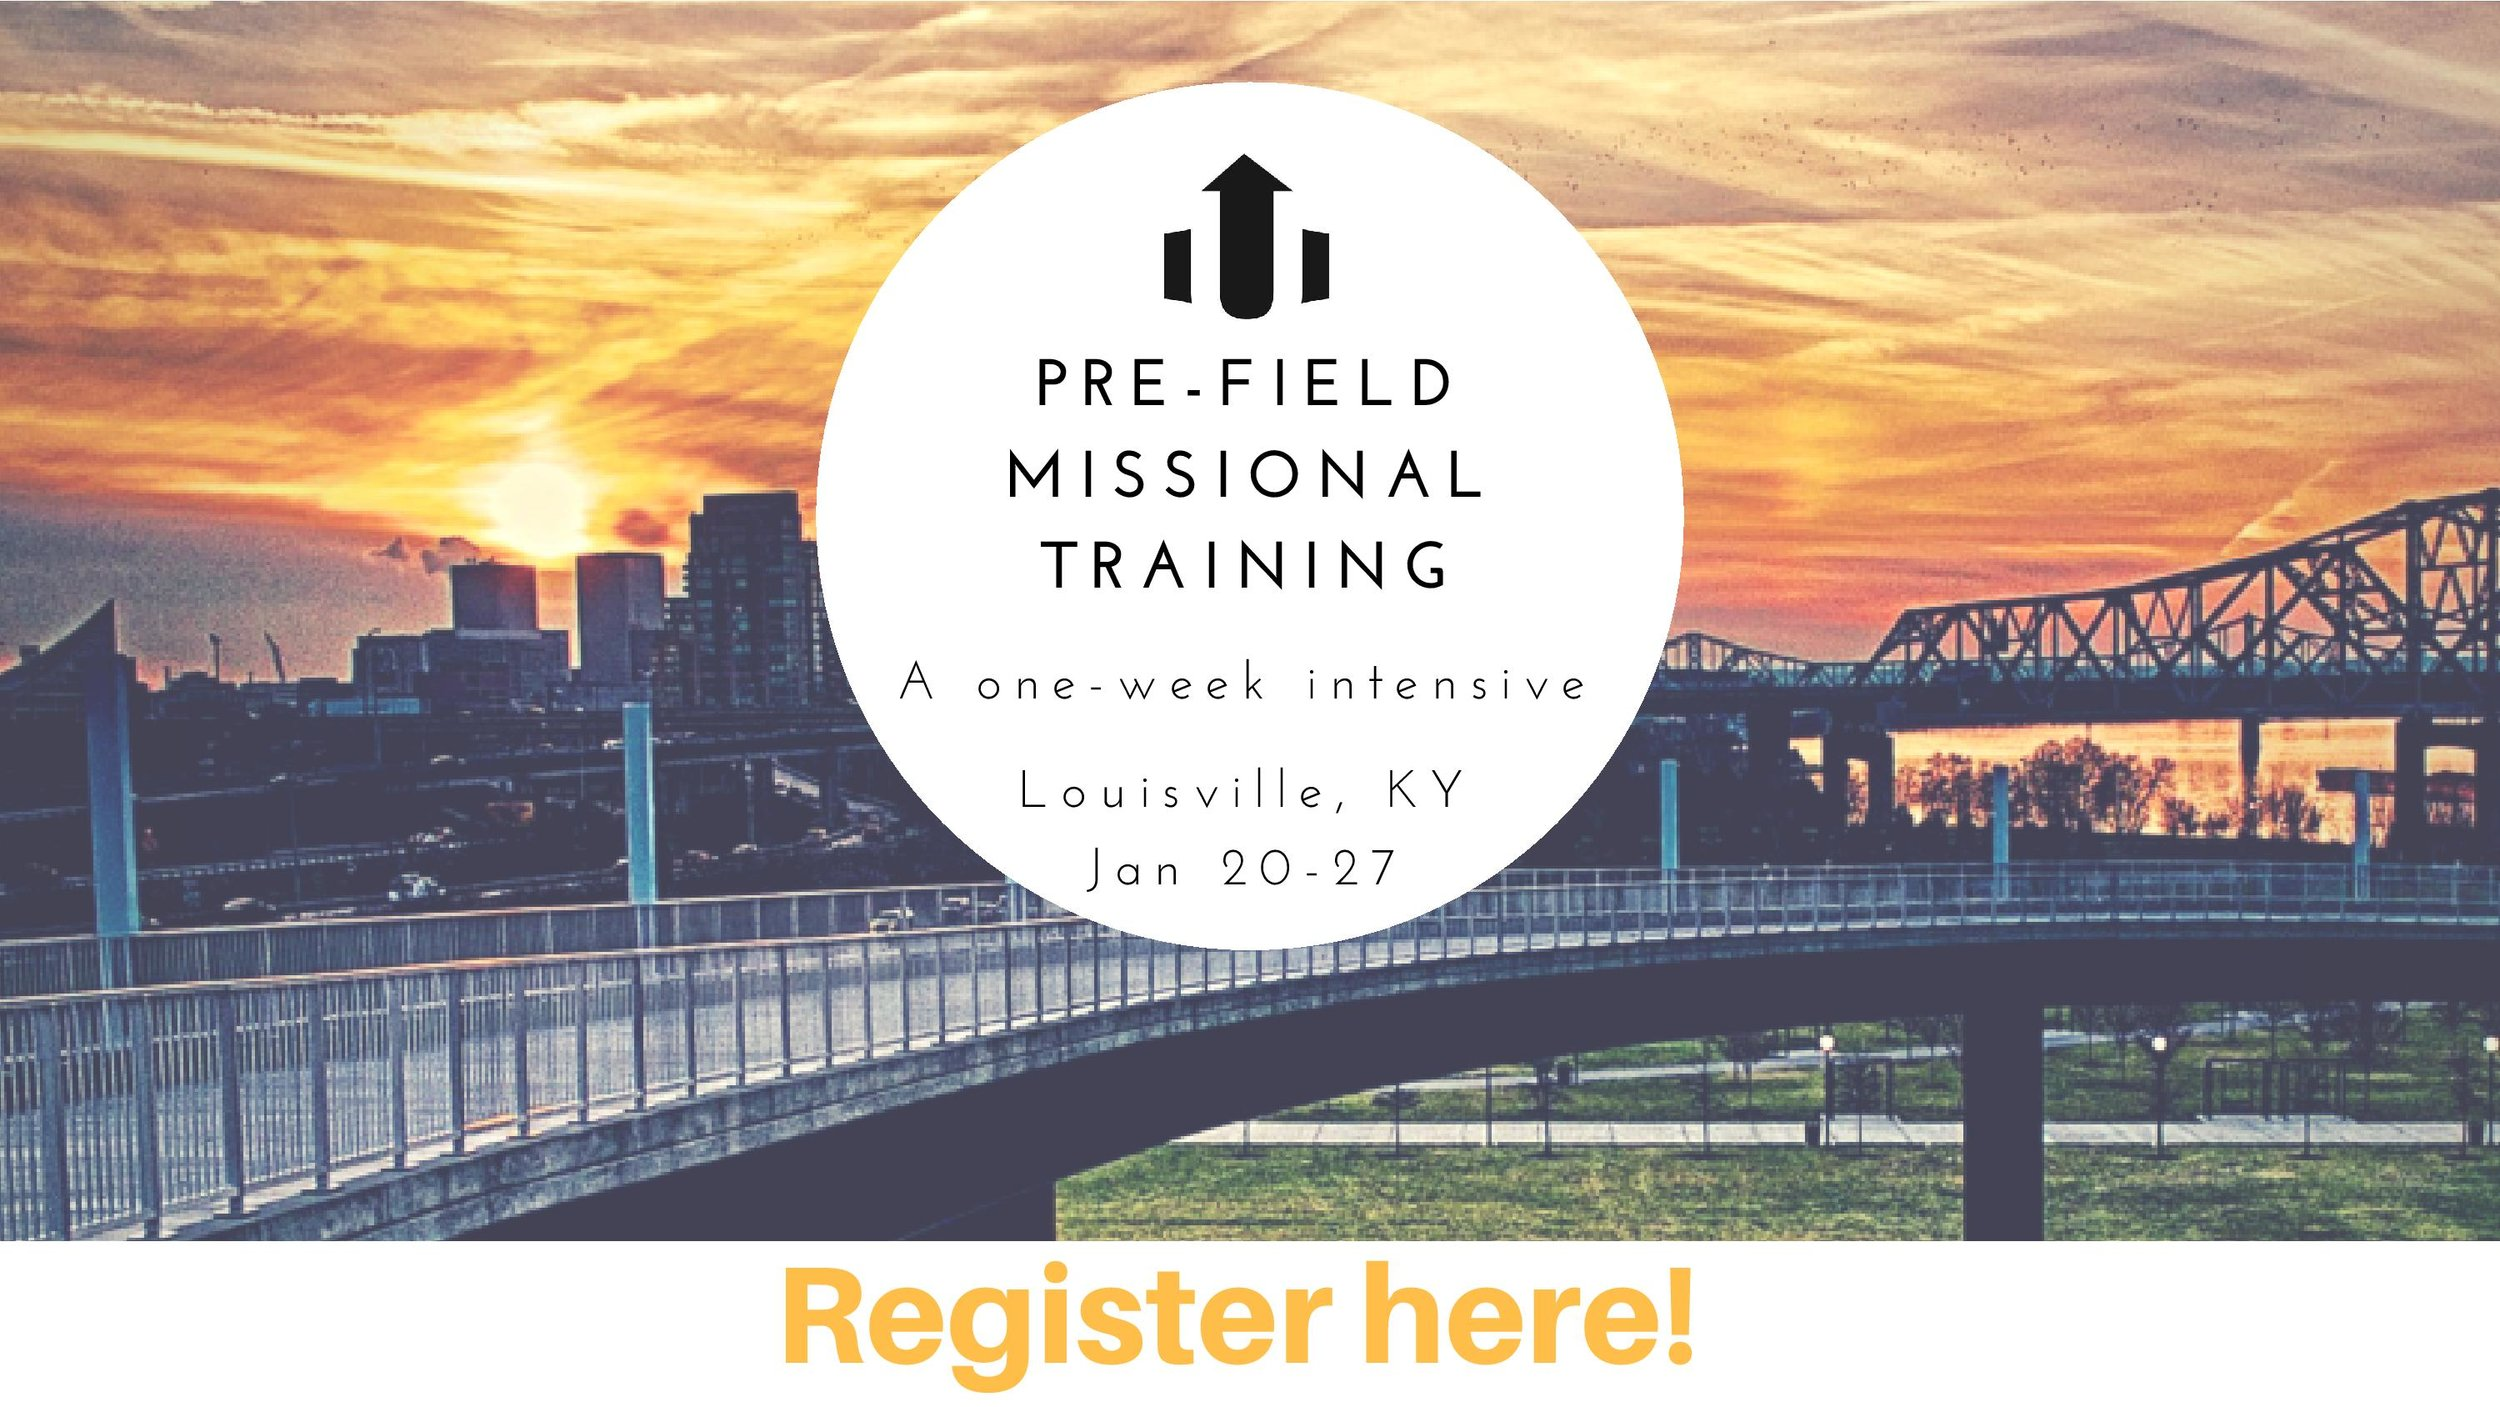 Pre-Field Missional Training-register here ad (1)-page-001.jpg